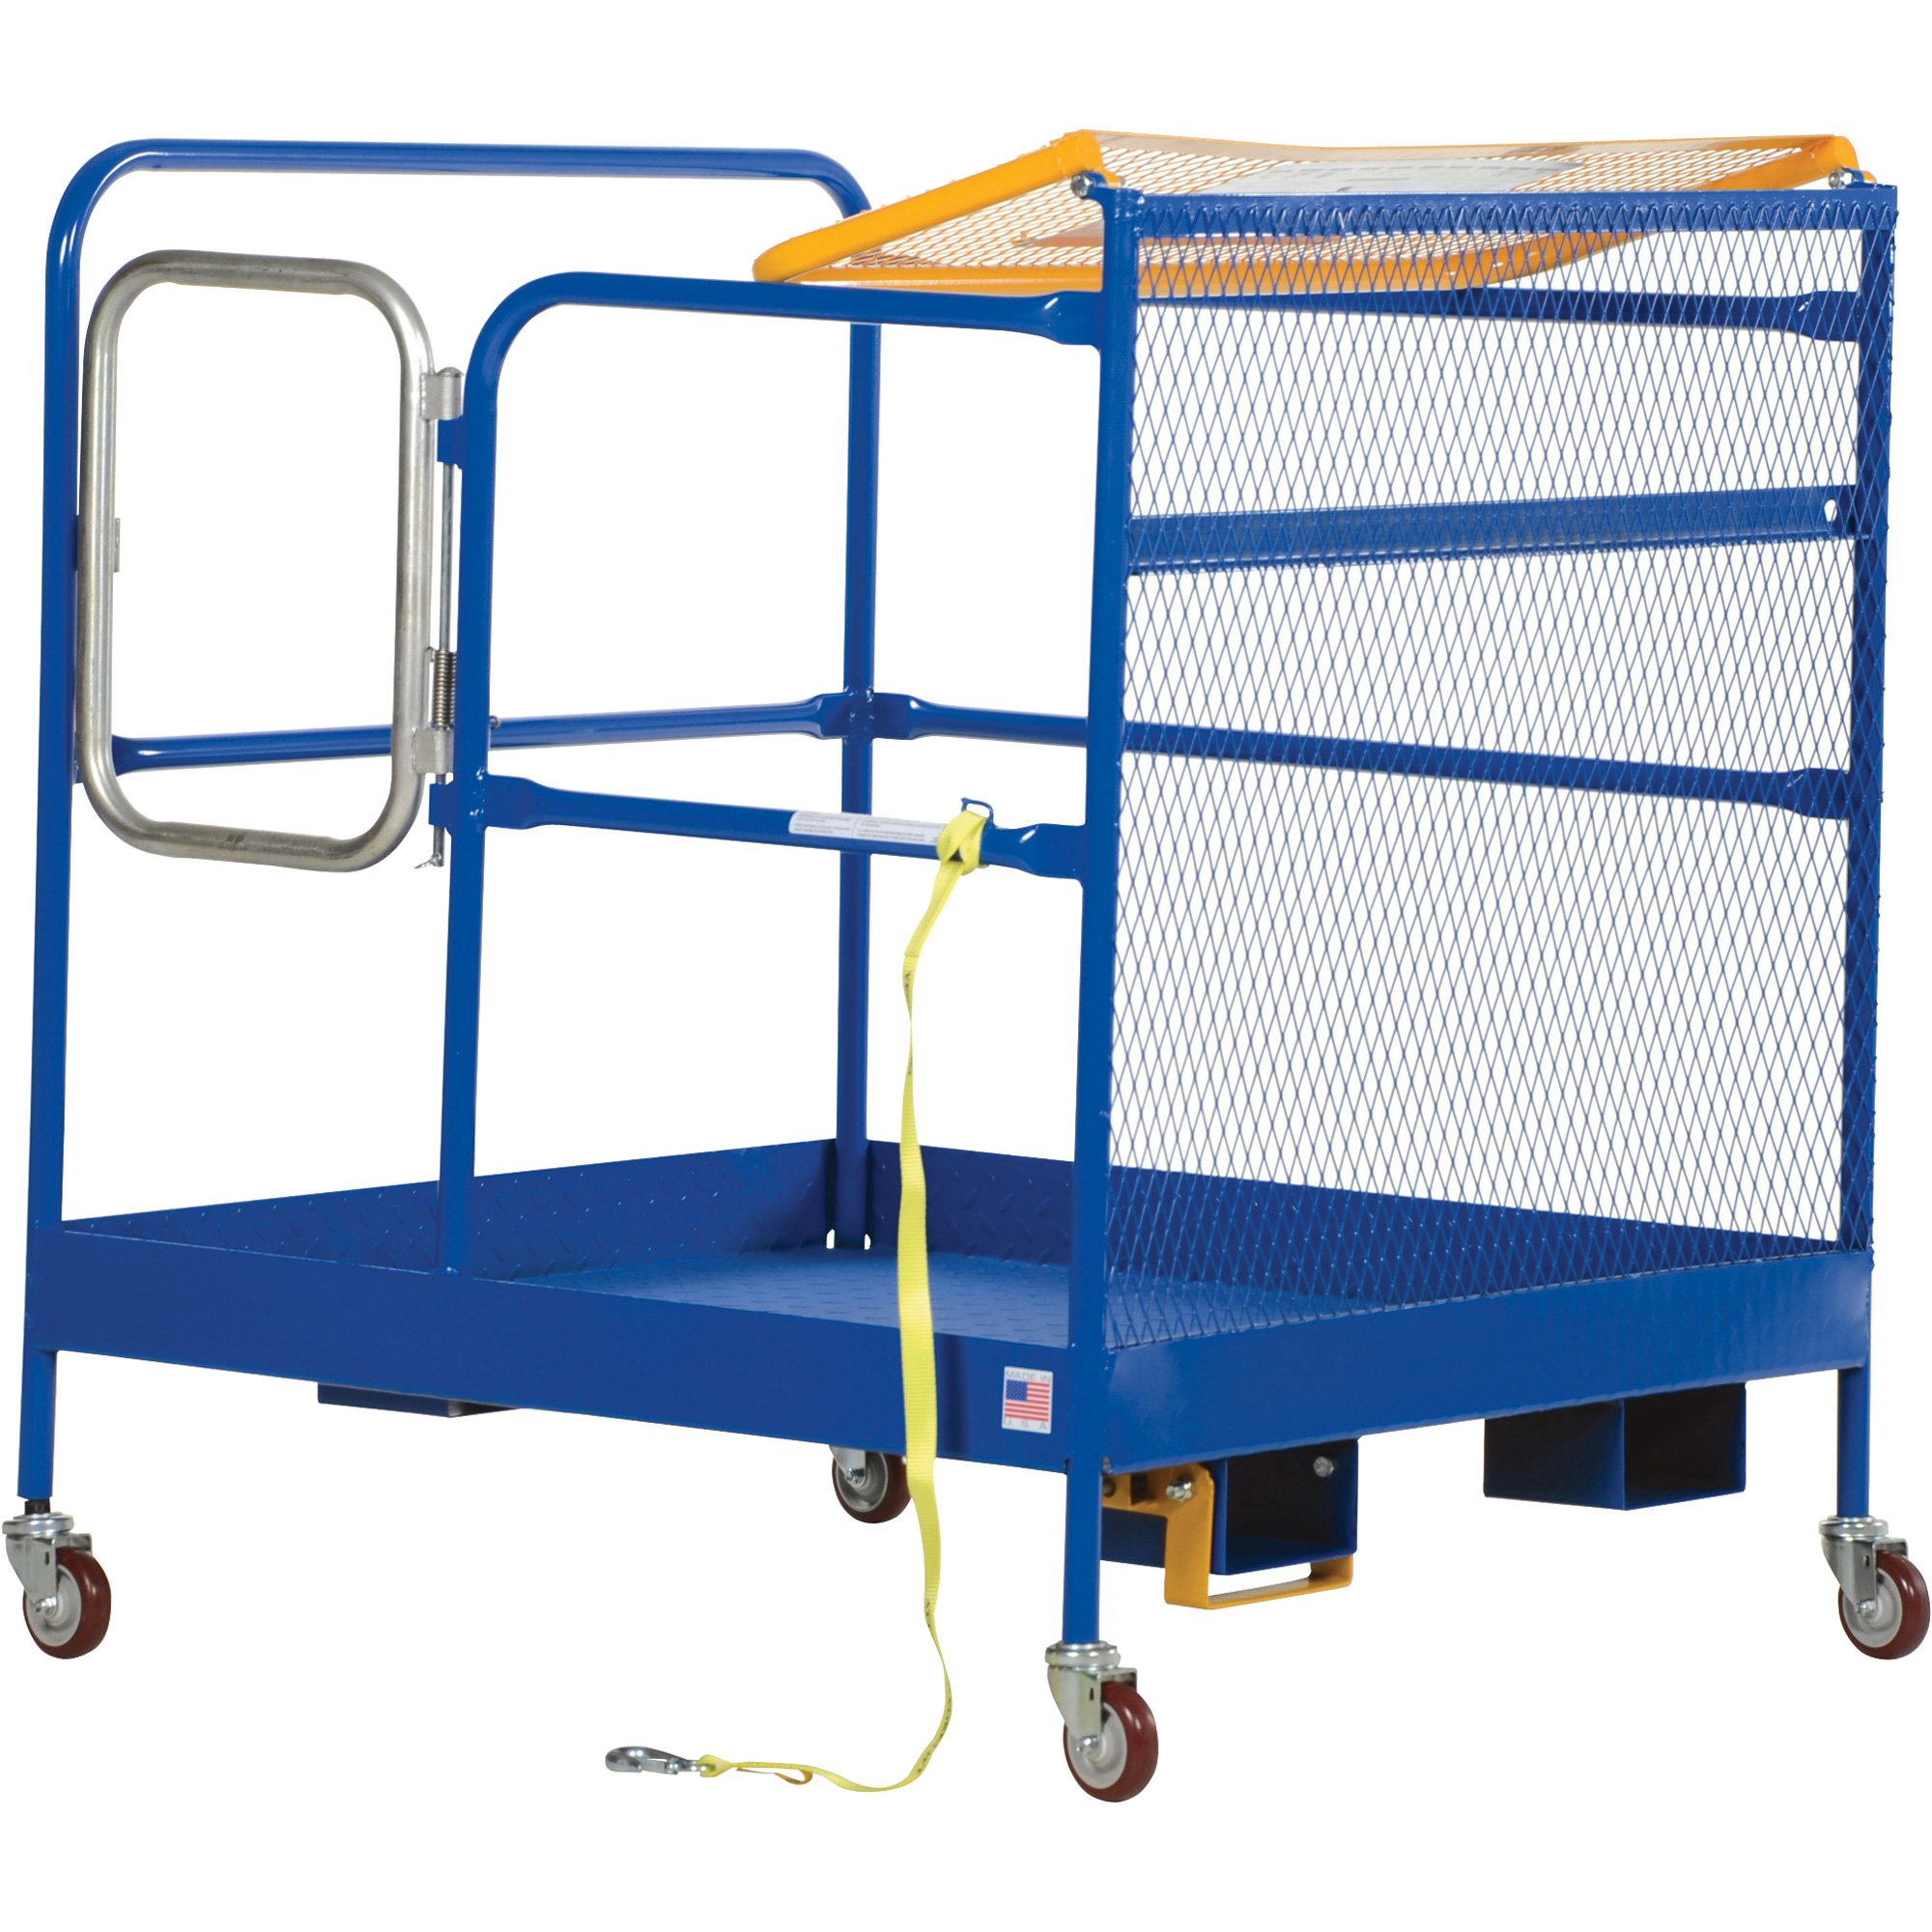 Vestil WP-3636-CA Steel Work Platform, 1000 lb Capacity, 36'' x 36'' with Casters, Powder Coat Blue, not for use in California